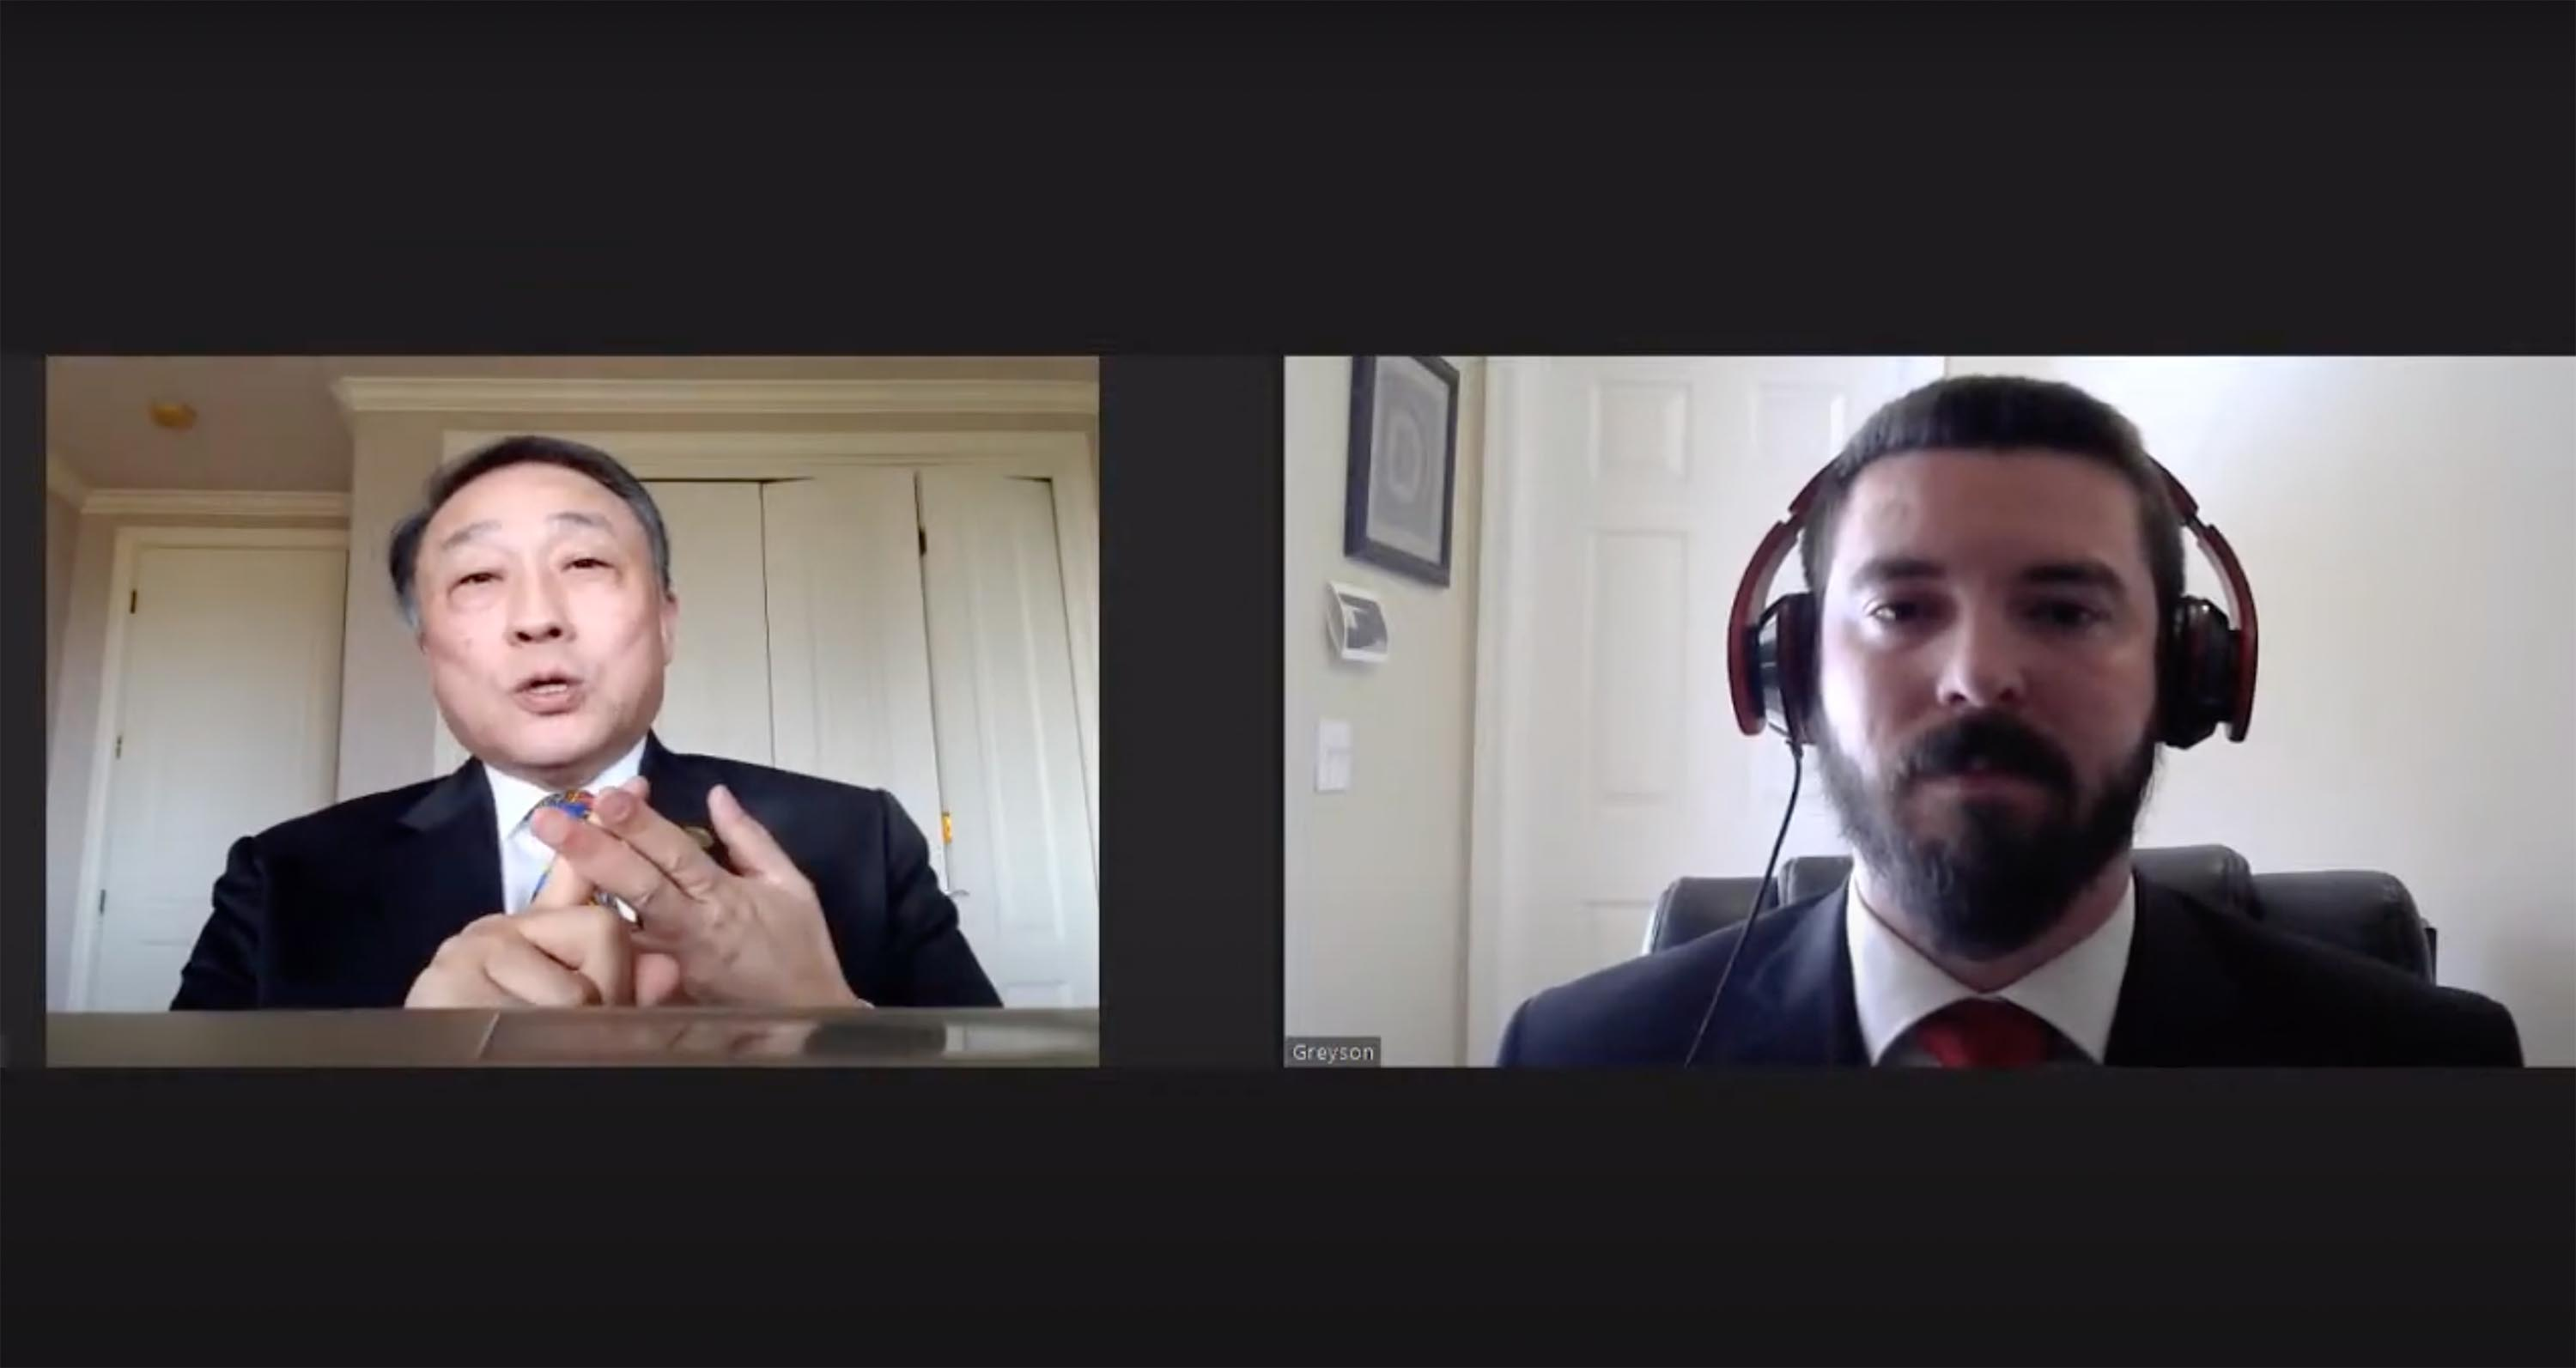 Top Oregon RNC official says he was unaware of pro-Nazi host and White national activist they discussed during YouTube chat